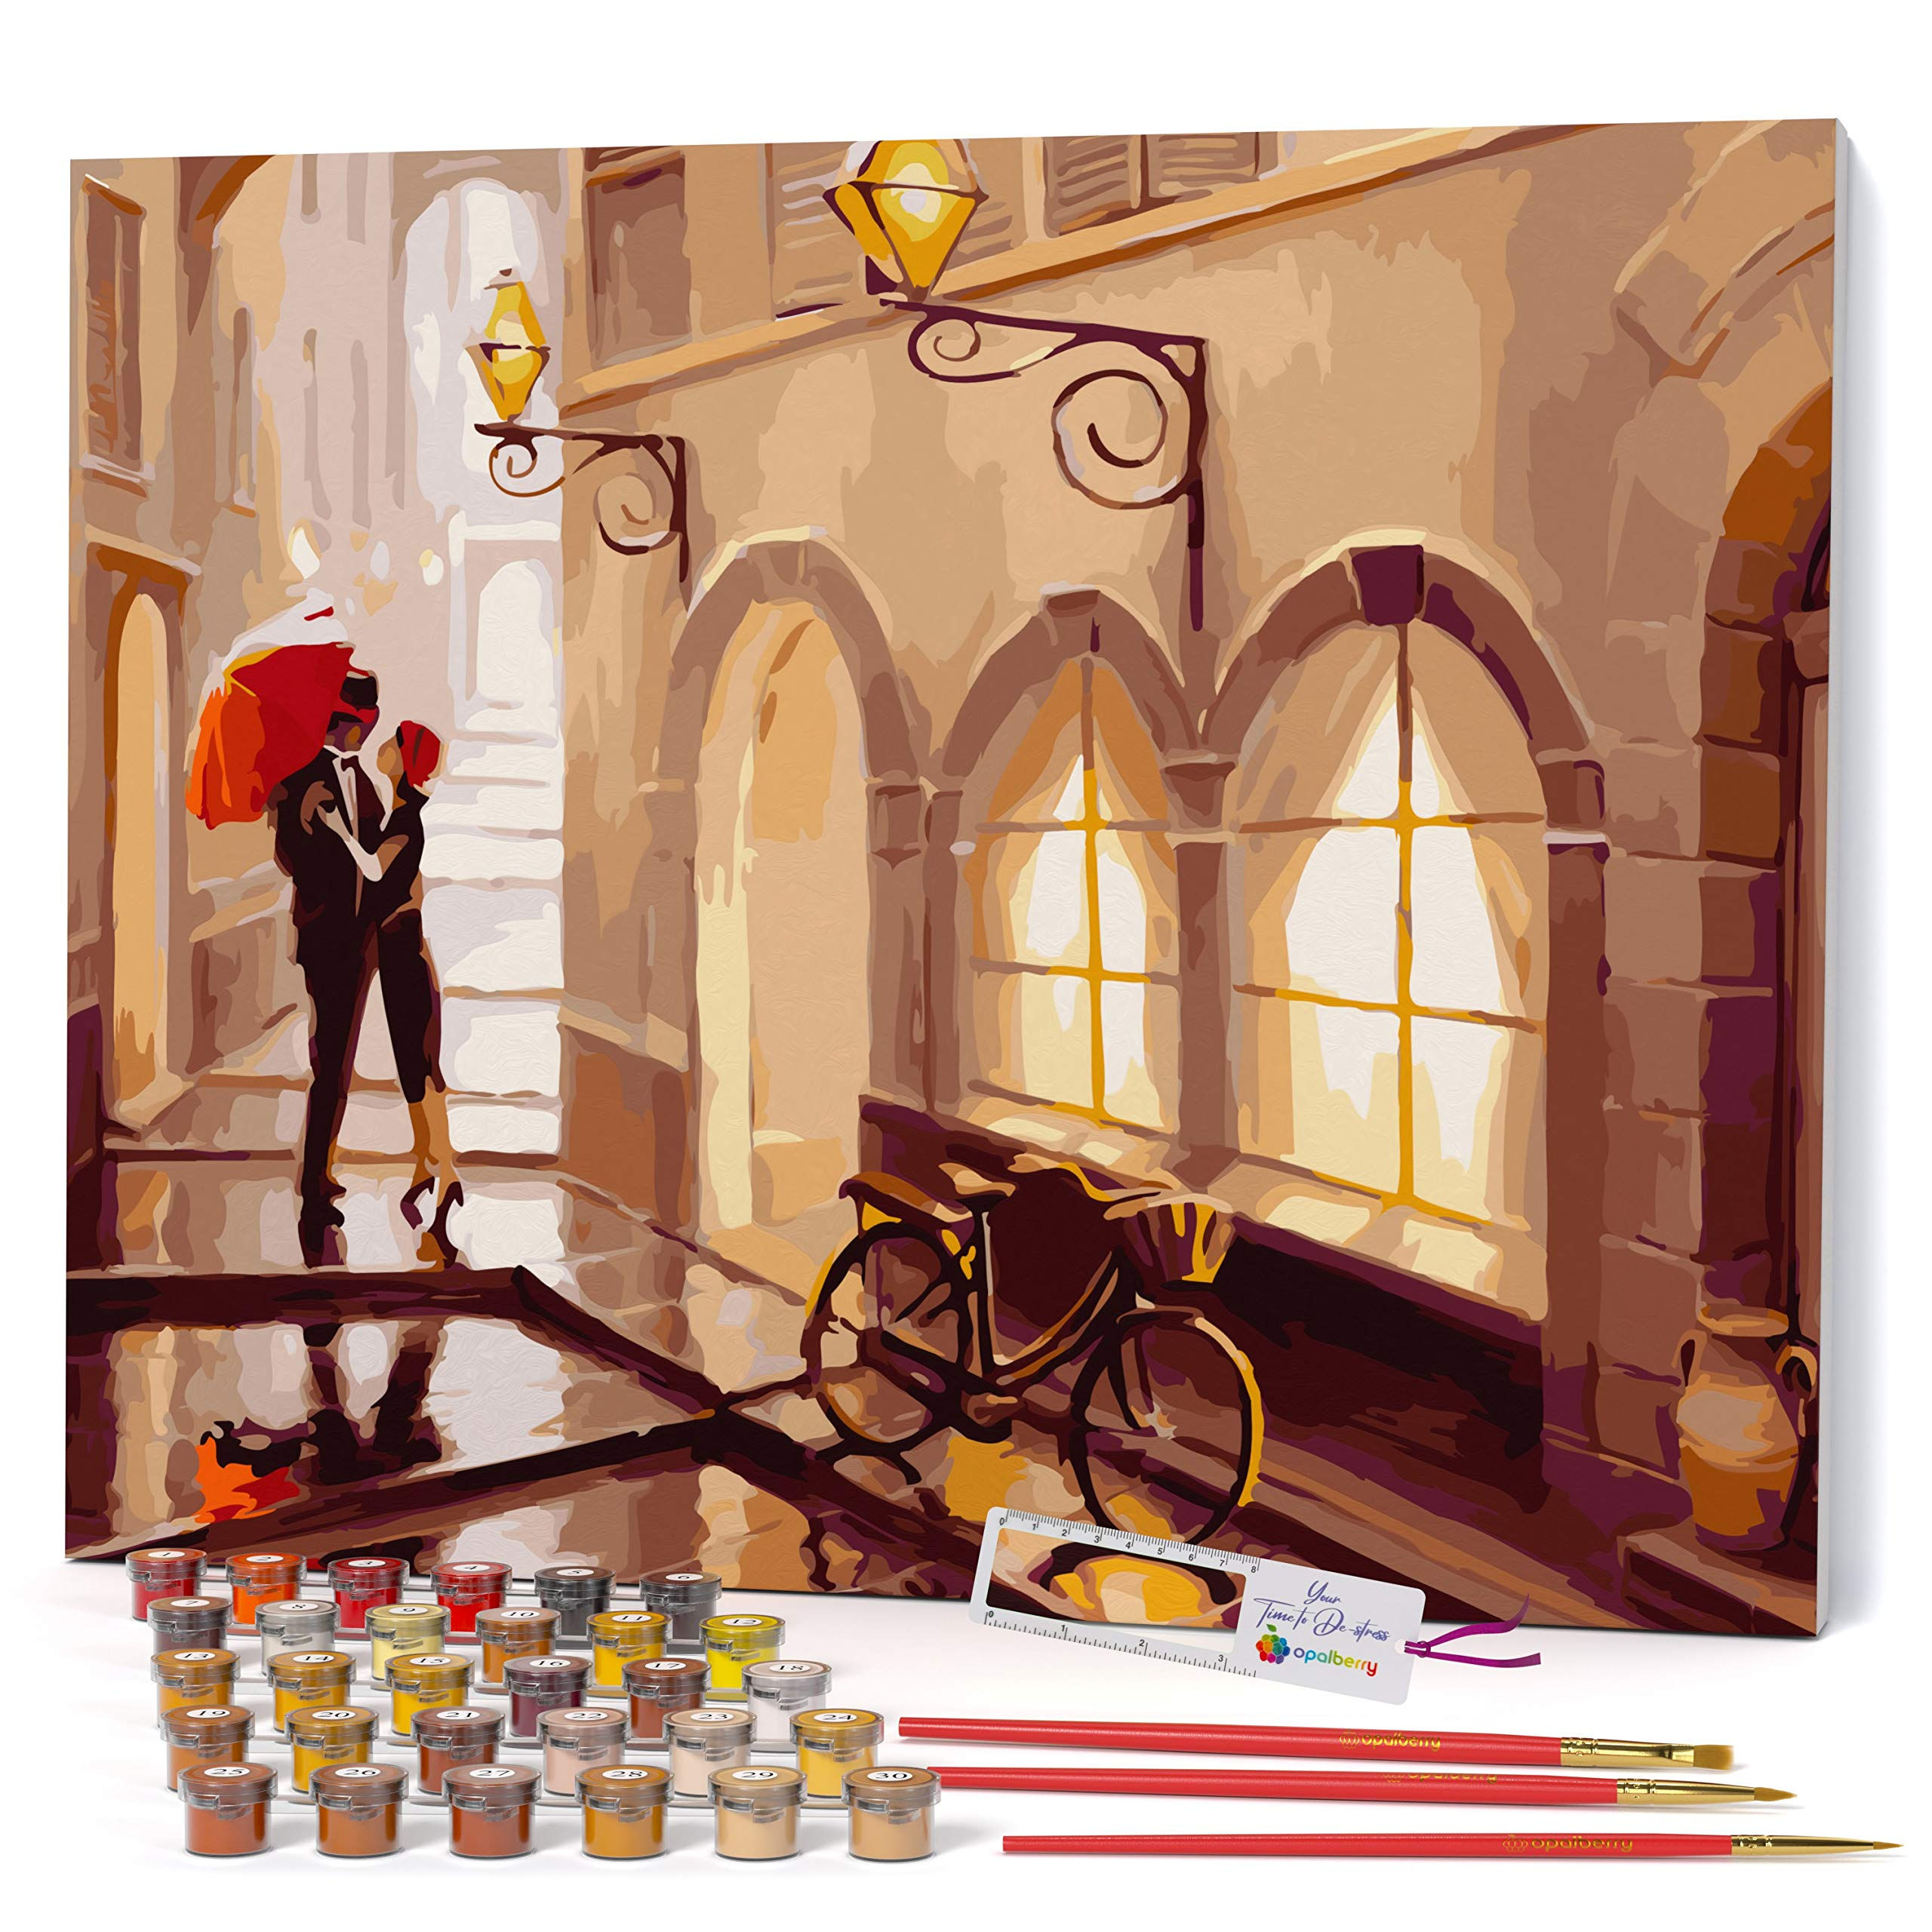 Opalberry Paint by Numbers for Adults Framed Canvas - Adults' Paint-by-Number Kits - Framed Paint by Numbers for Adults Beginner - Paint by Numbers for Adults with Frame - Art Paint by Numbers